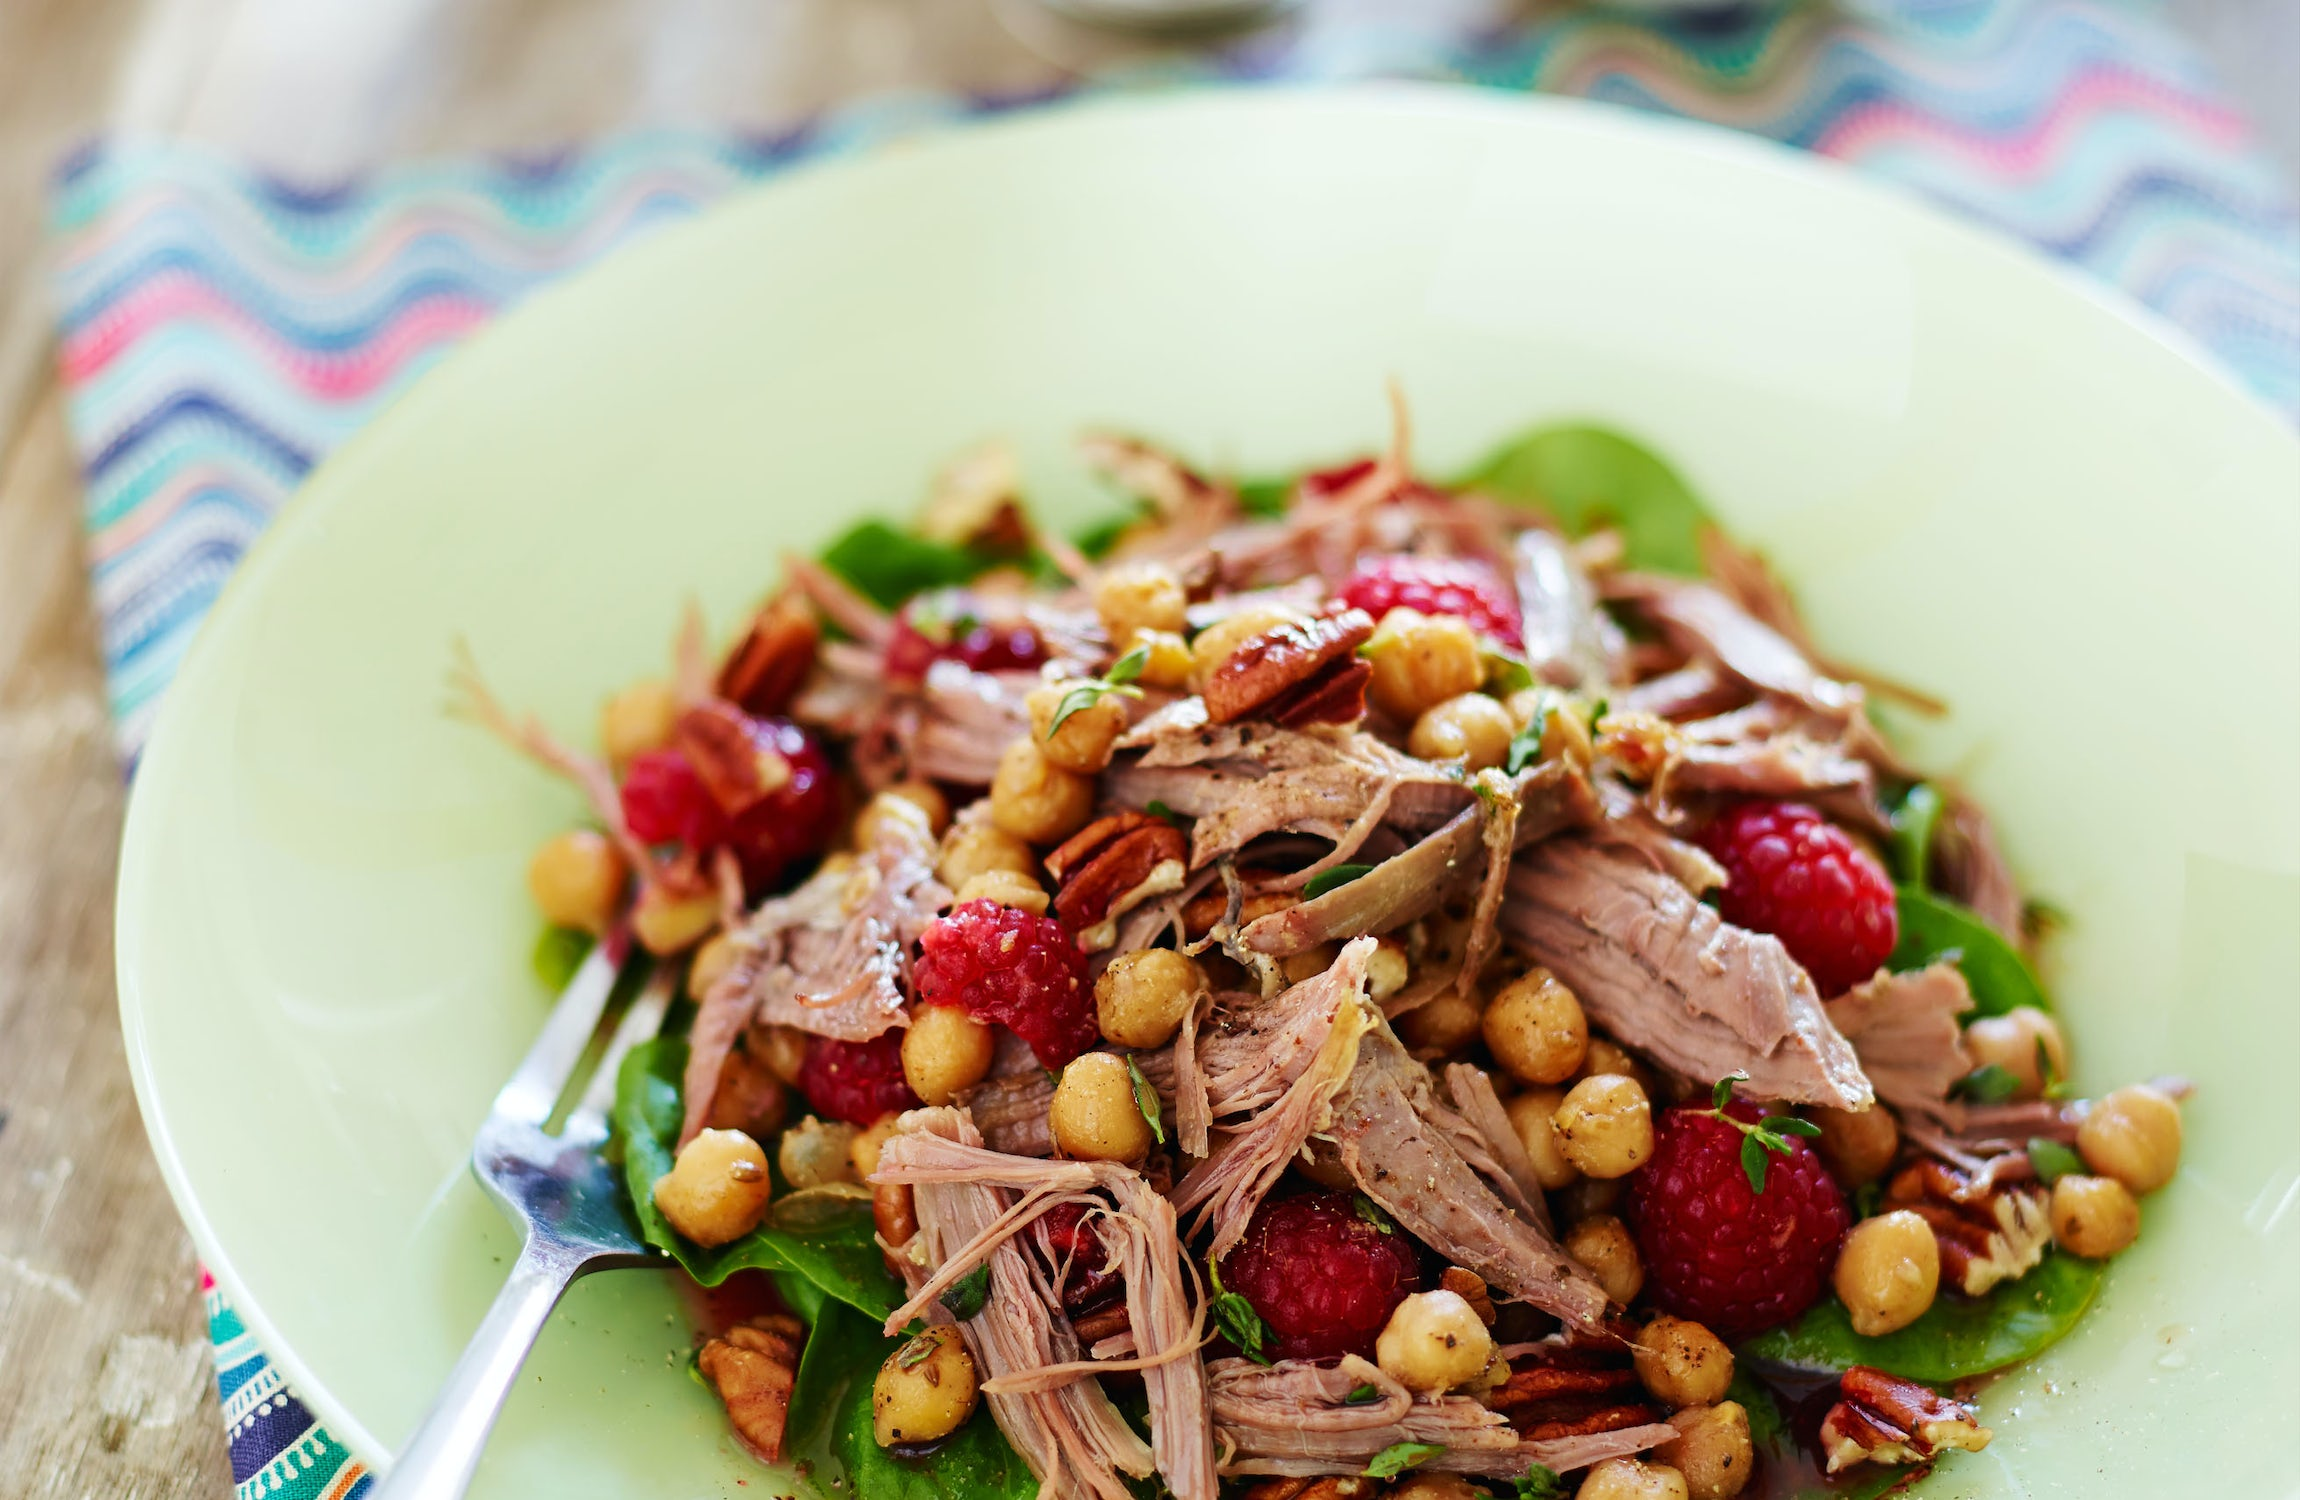 Warm Salad of Middle Eastern Pulled Lamb & Chickpeas with Raspberries